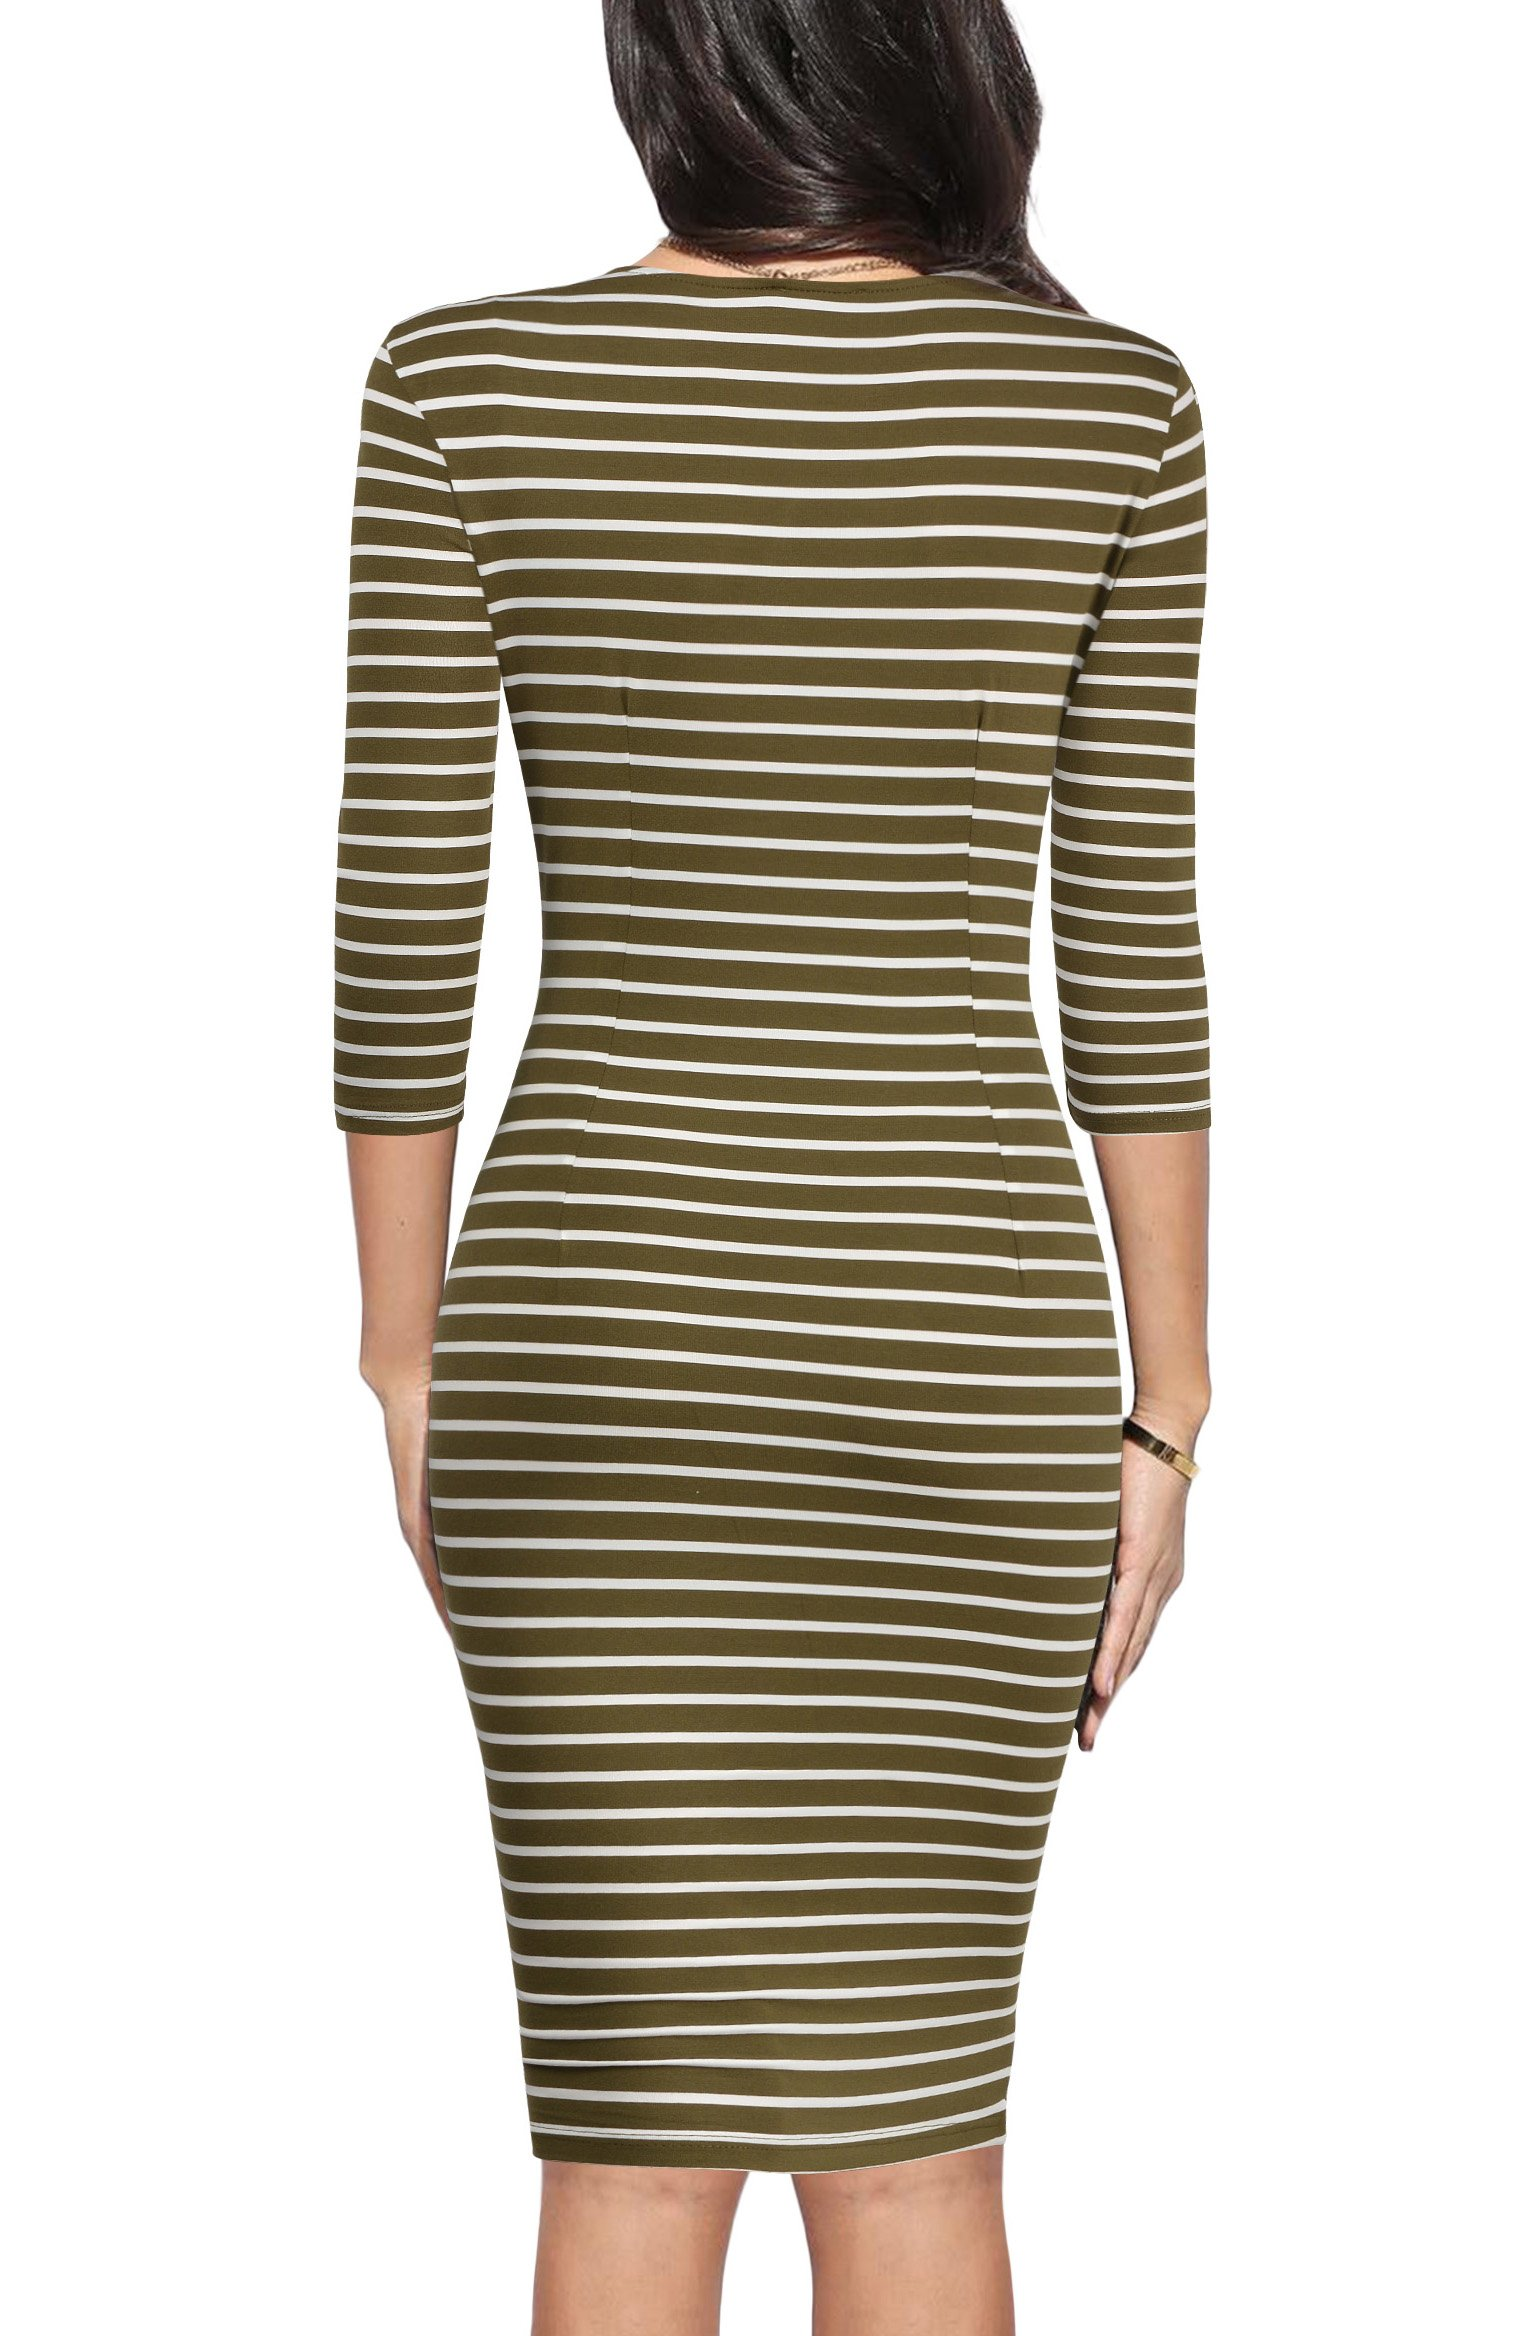 REPHYLLIS Women 3/4 Sleeve Striped Wear to Work Business Cocktail Pencil Dress (Small, Armygreen) by REPHYLLIS® (Image #3)